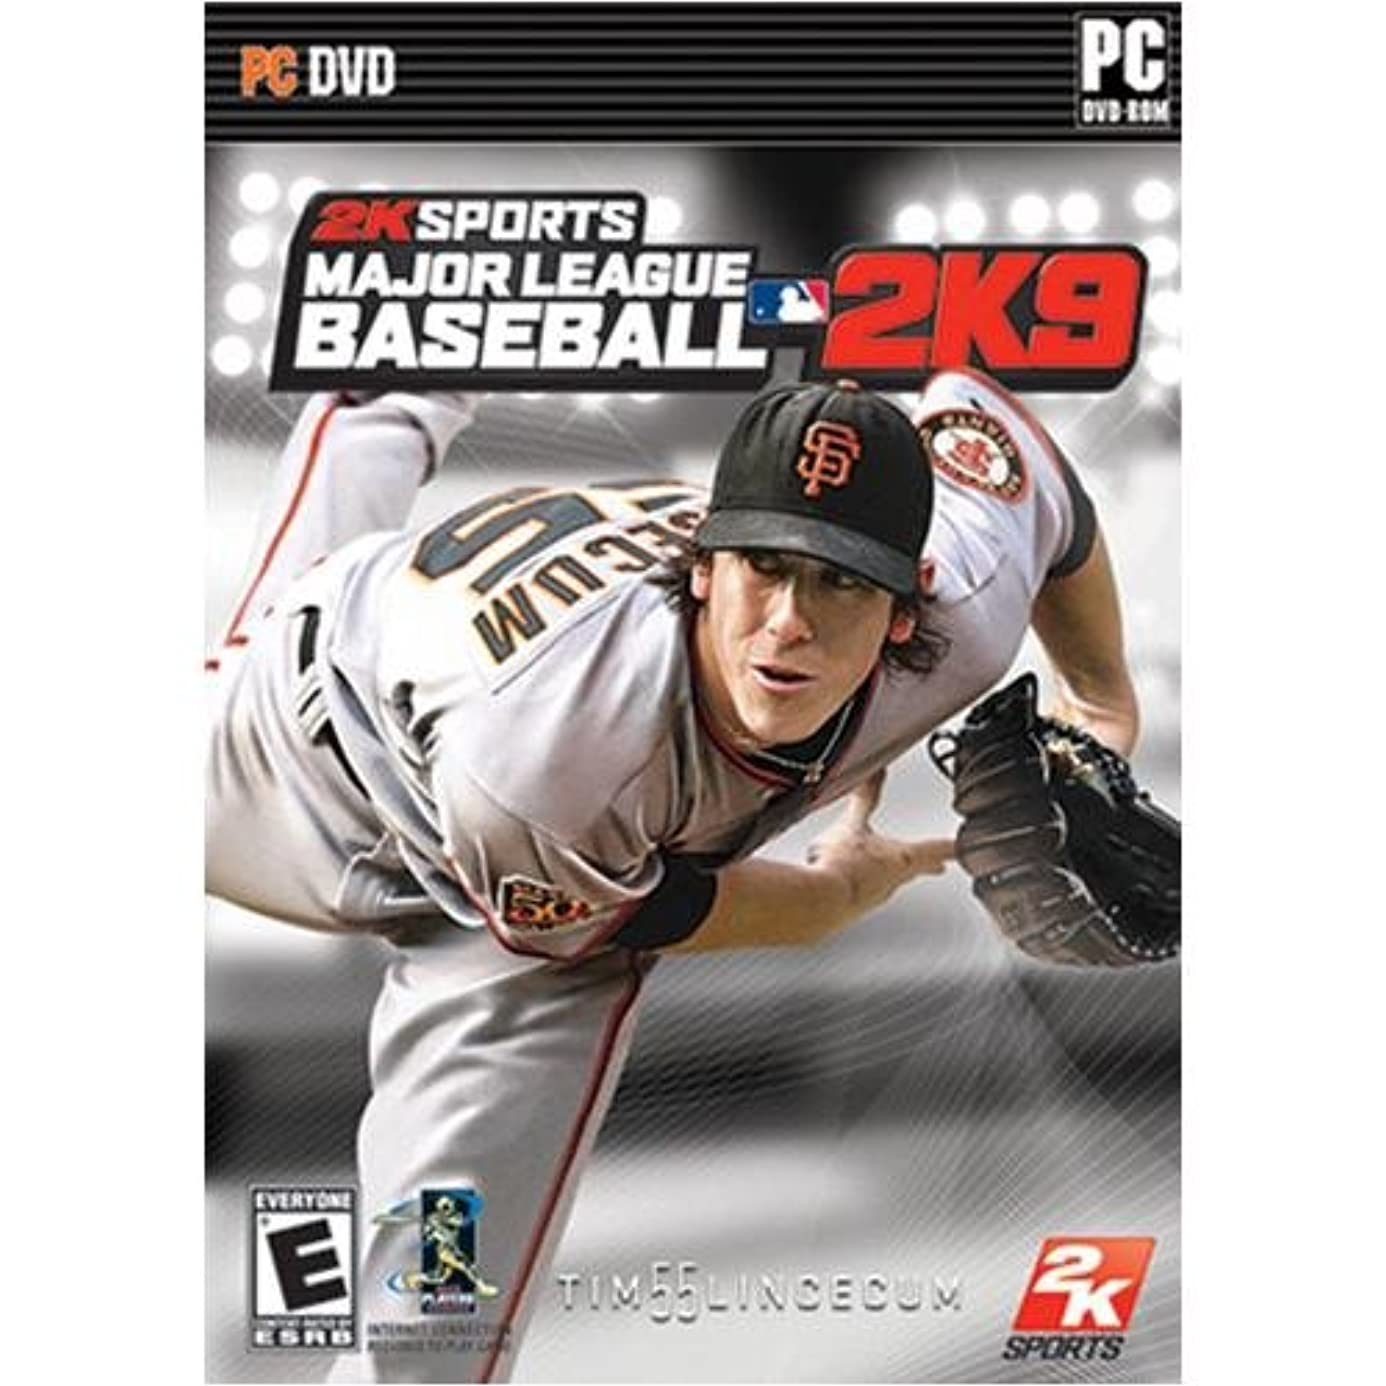 Major League Baseball 2K9 - PC